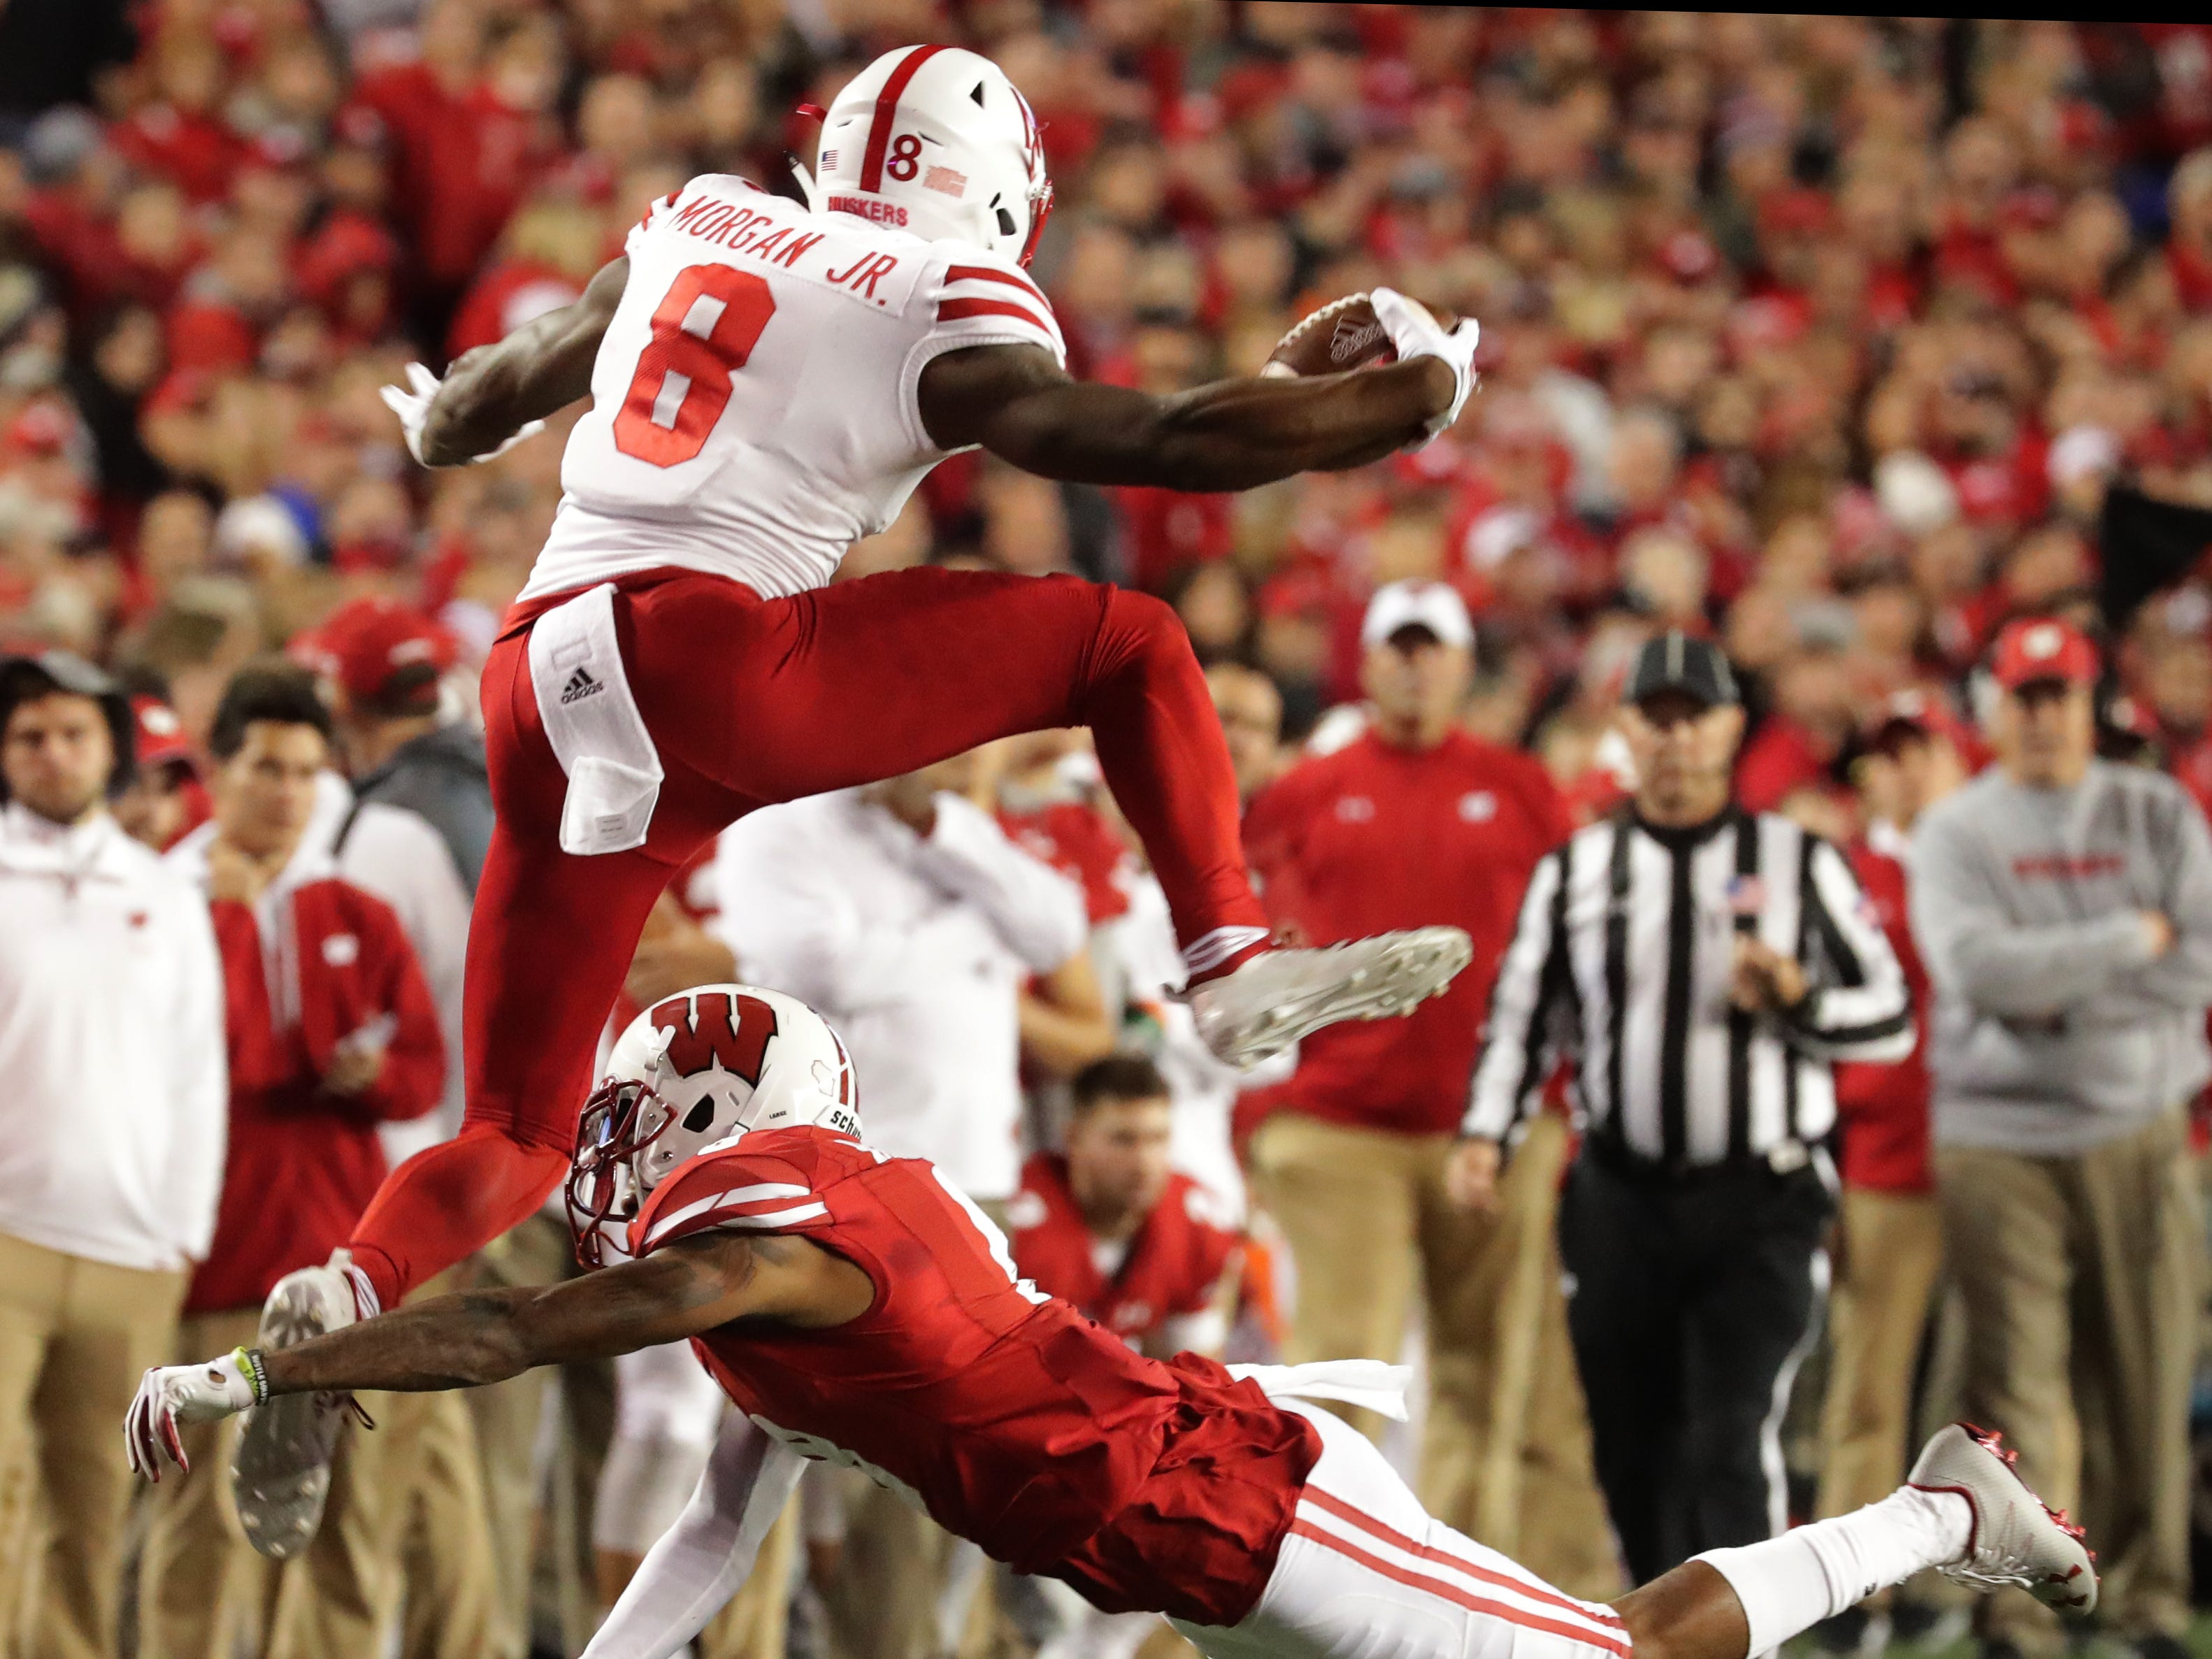 Nebraska wide receiver Stanley Morgan Jr. hurdles Wisconsin cornerback Deron Harrell to pick up a few extra yards and a first down during the second quarter Saturday night at Camp Randall Stadium.